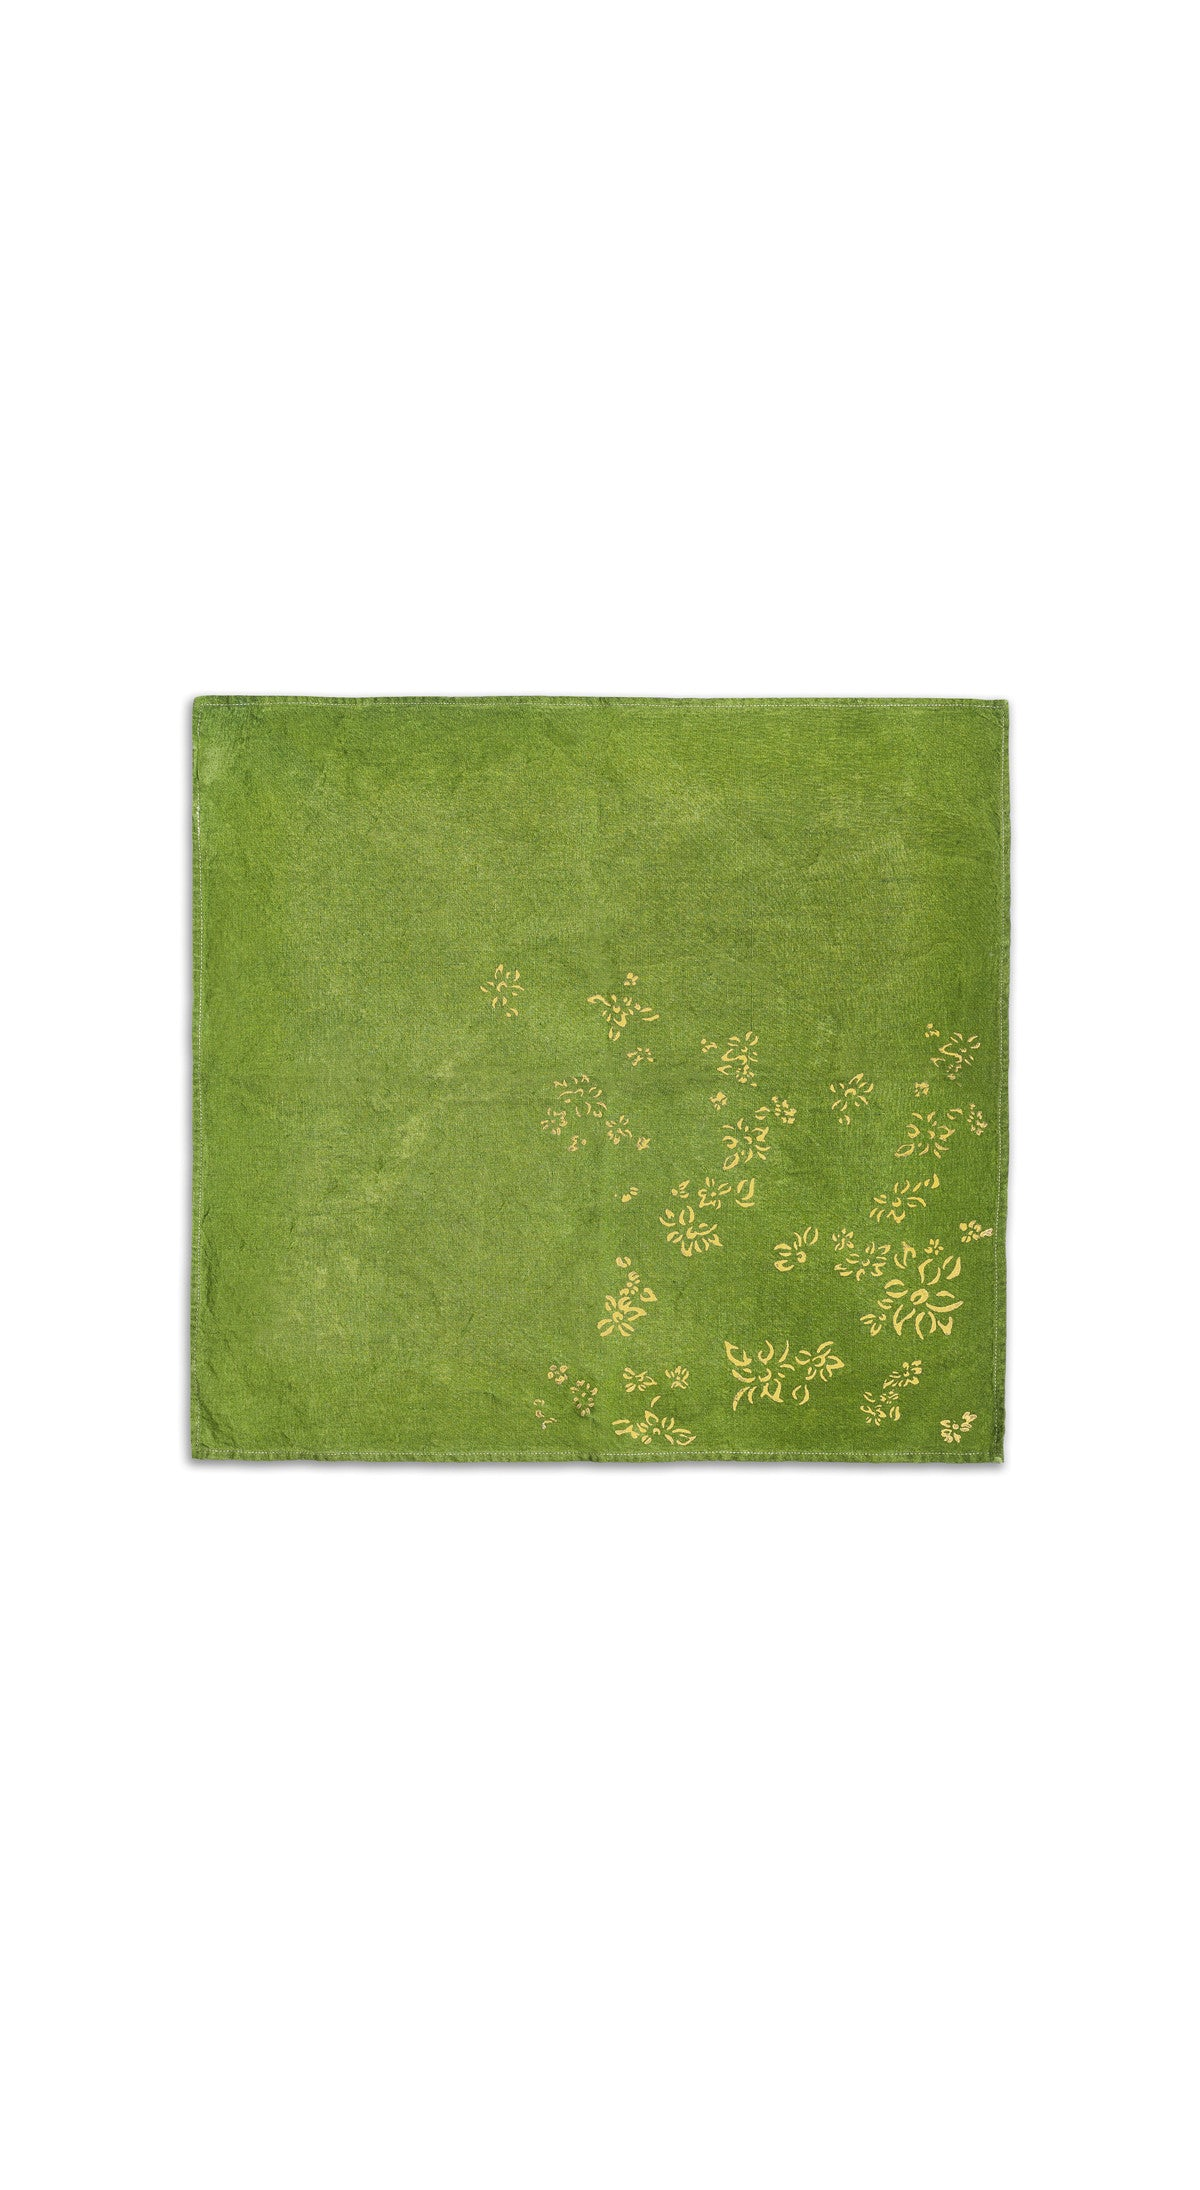 Bernadette's Hand Stamped Falling Flower On Full Field Linen Napkin in Avocado Green & Gold